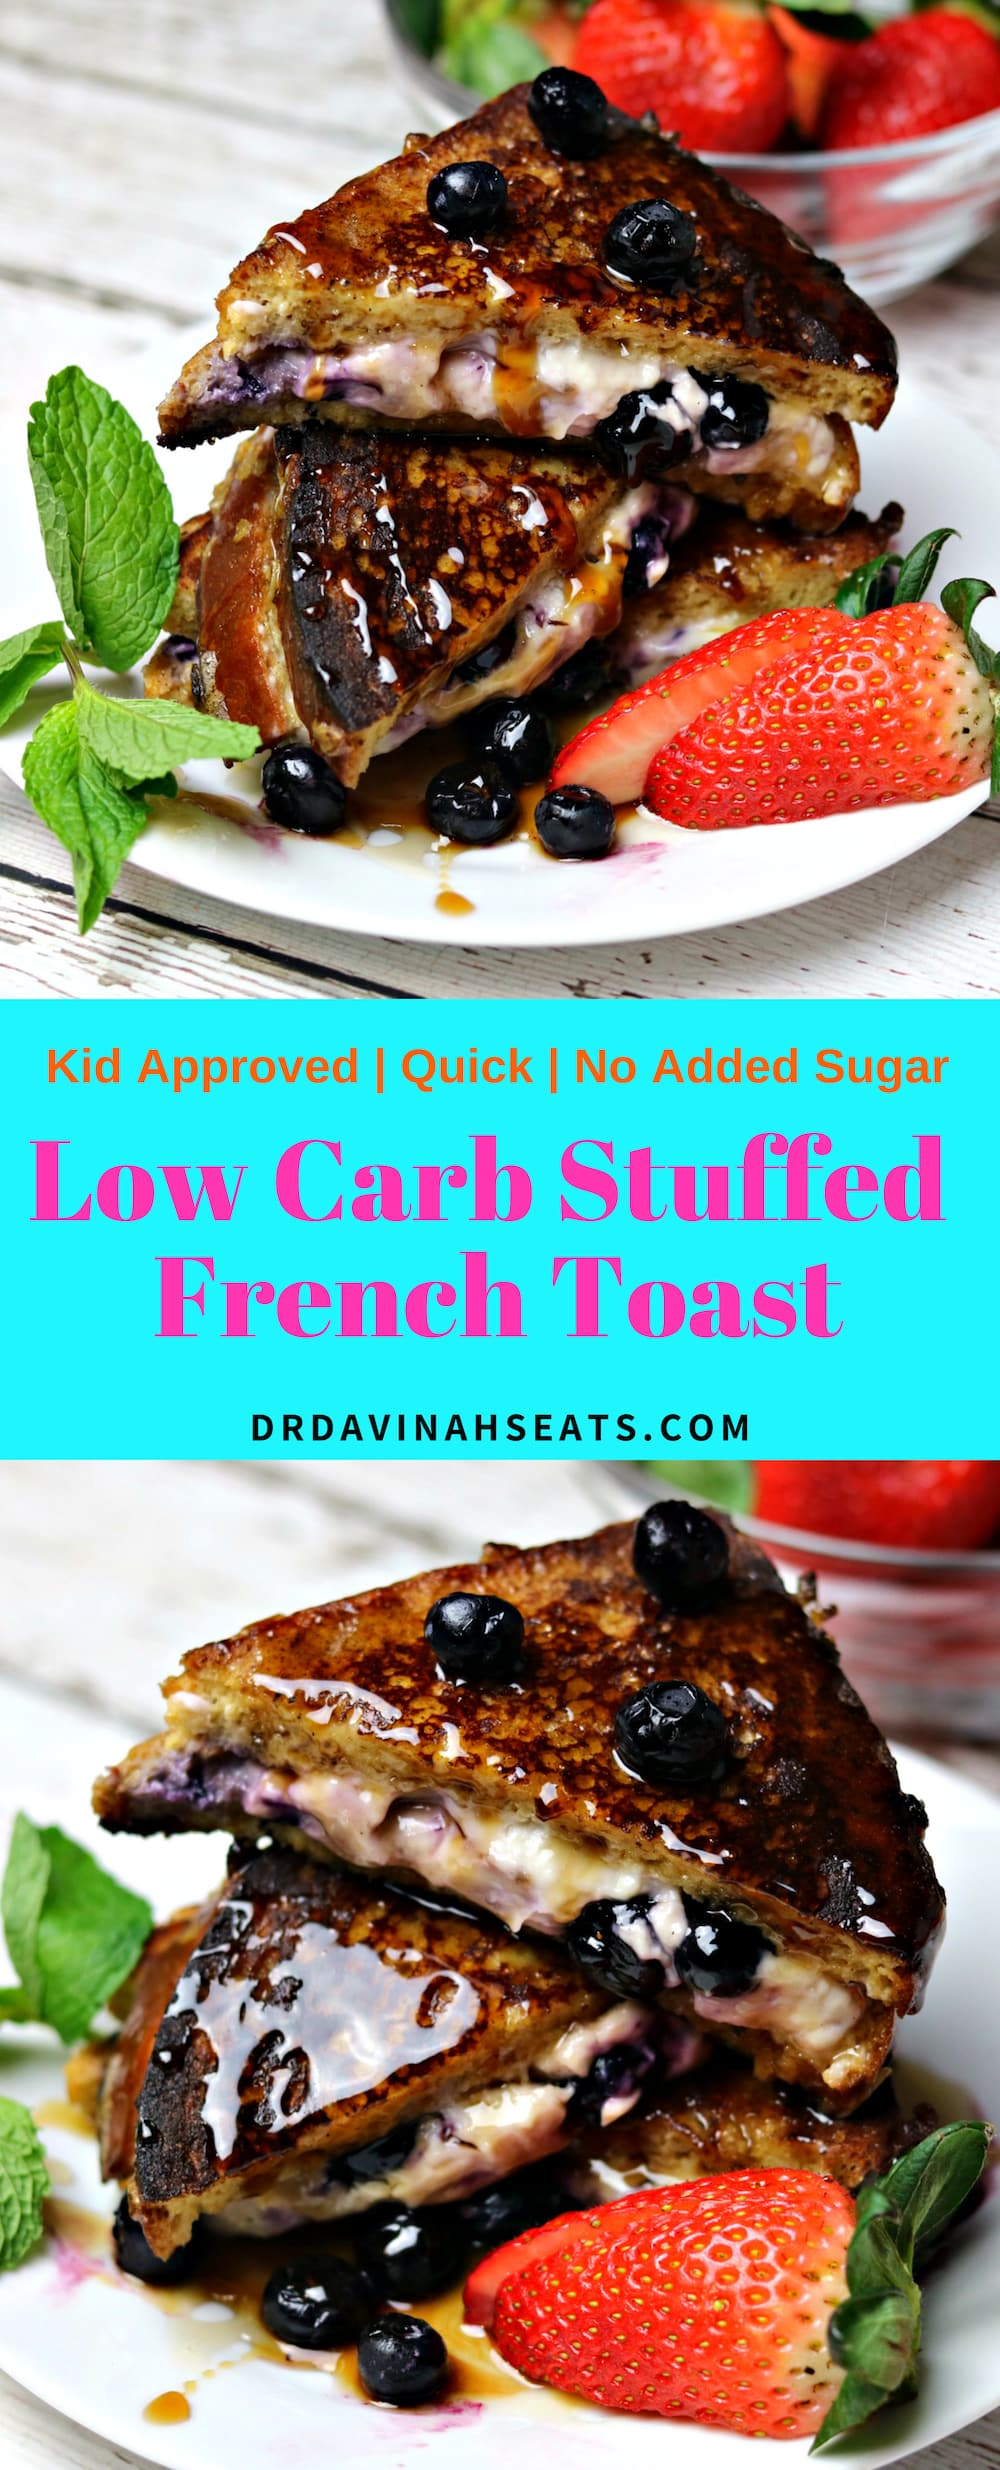 A low carb and Keto-friendly recipe for Stuffed French Toast that uses Sola Low Carb bread and Sola Sugar Replacement. #ketobread #ketobreakfast #lowcarbbread #lowcarbbreakfast #quickmeal #nosugaradded #kidapproved